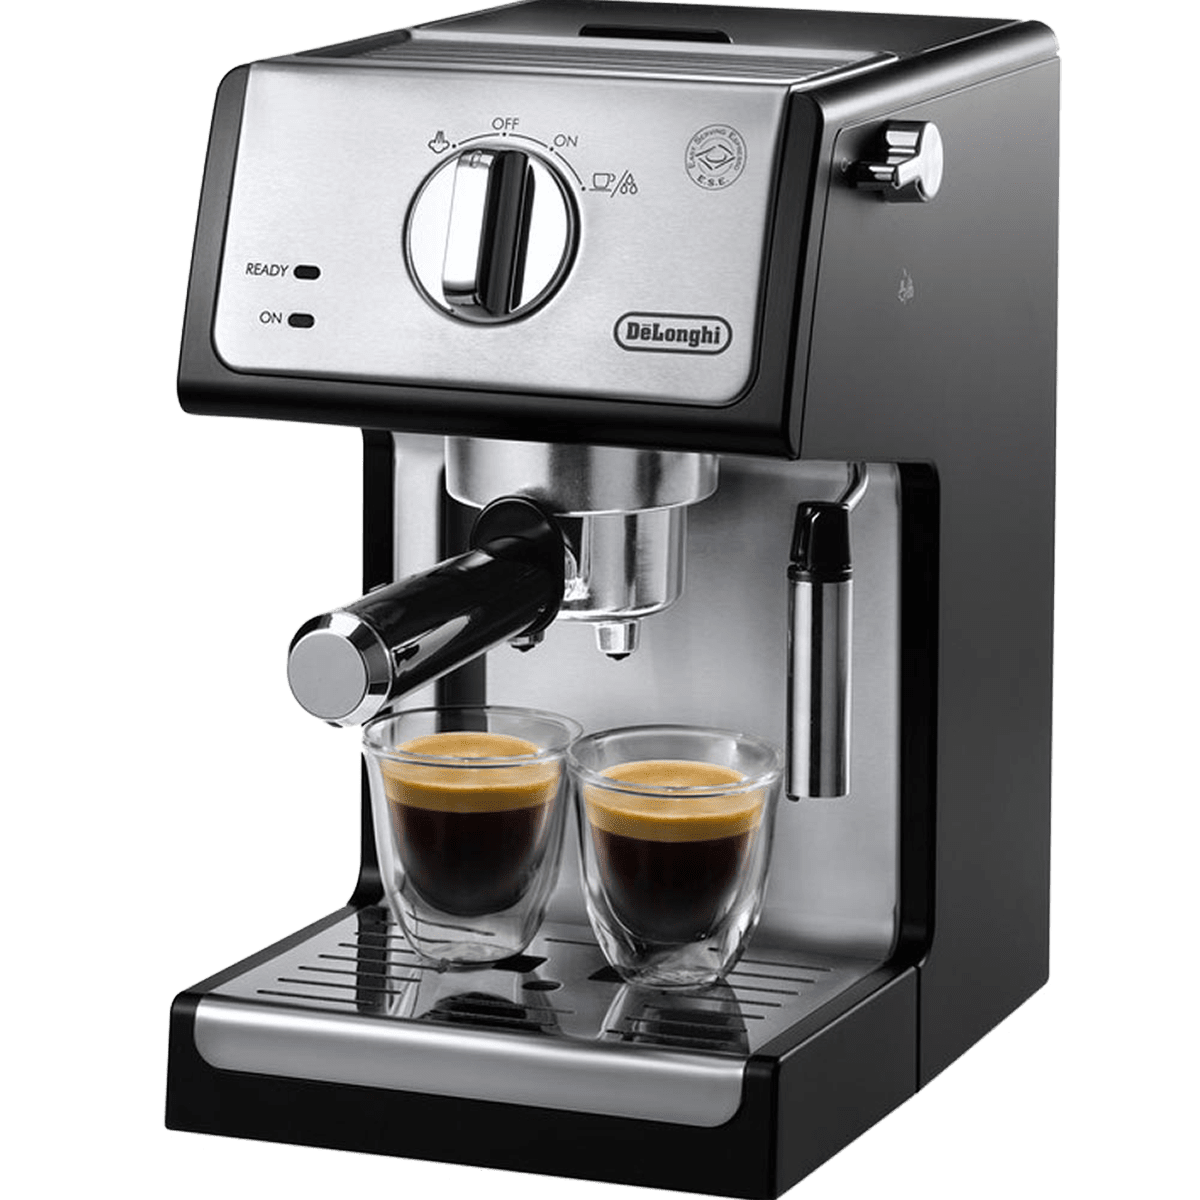 delonghi ecp3420 manual espresso machine quench essentials. Black Bedroom Furniture Sets. Home Design Ideas